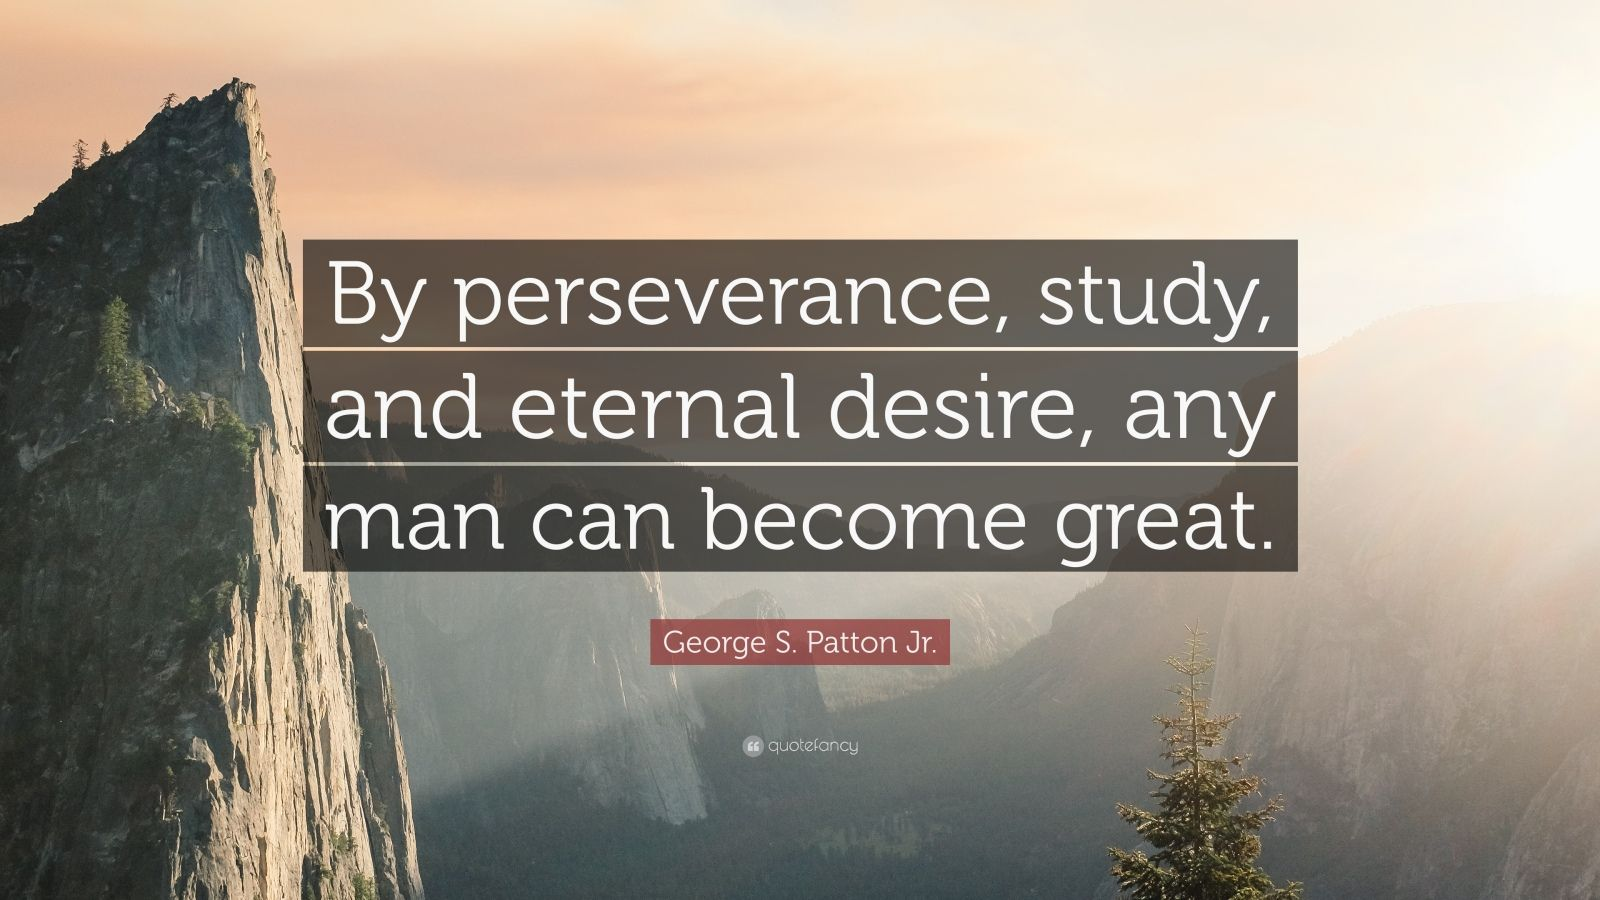 """George S. Patton Jr. Quote: """"By perseverance, study, and eternal desire, any man can become great."""""""